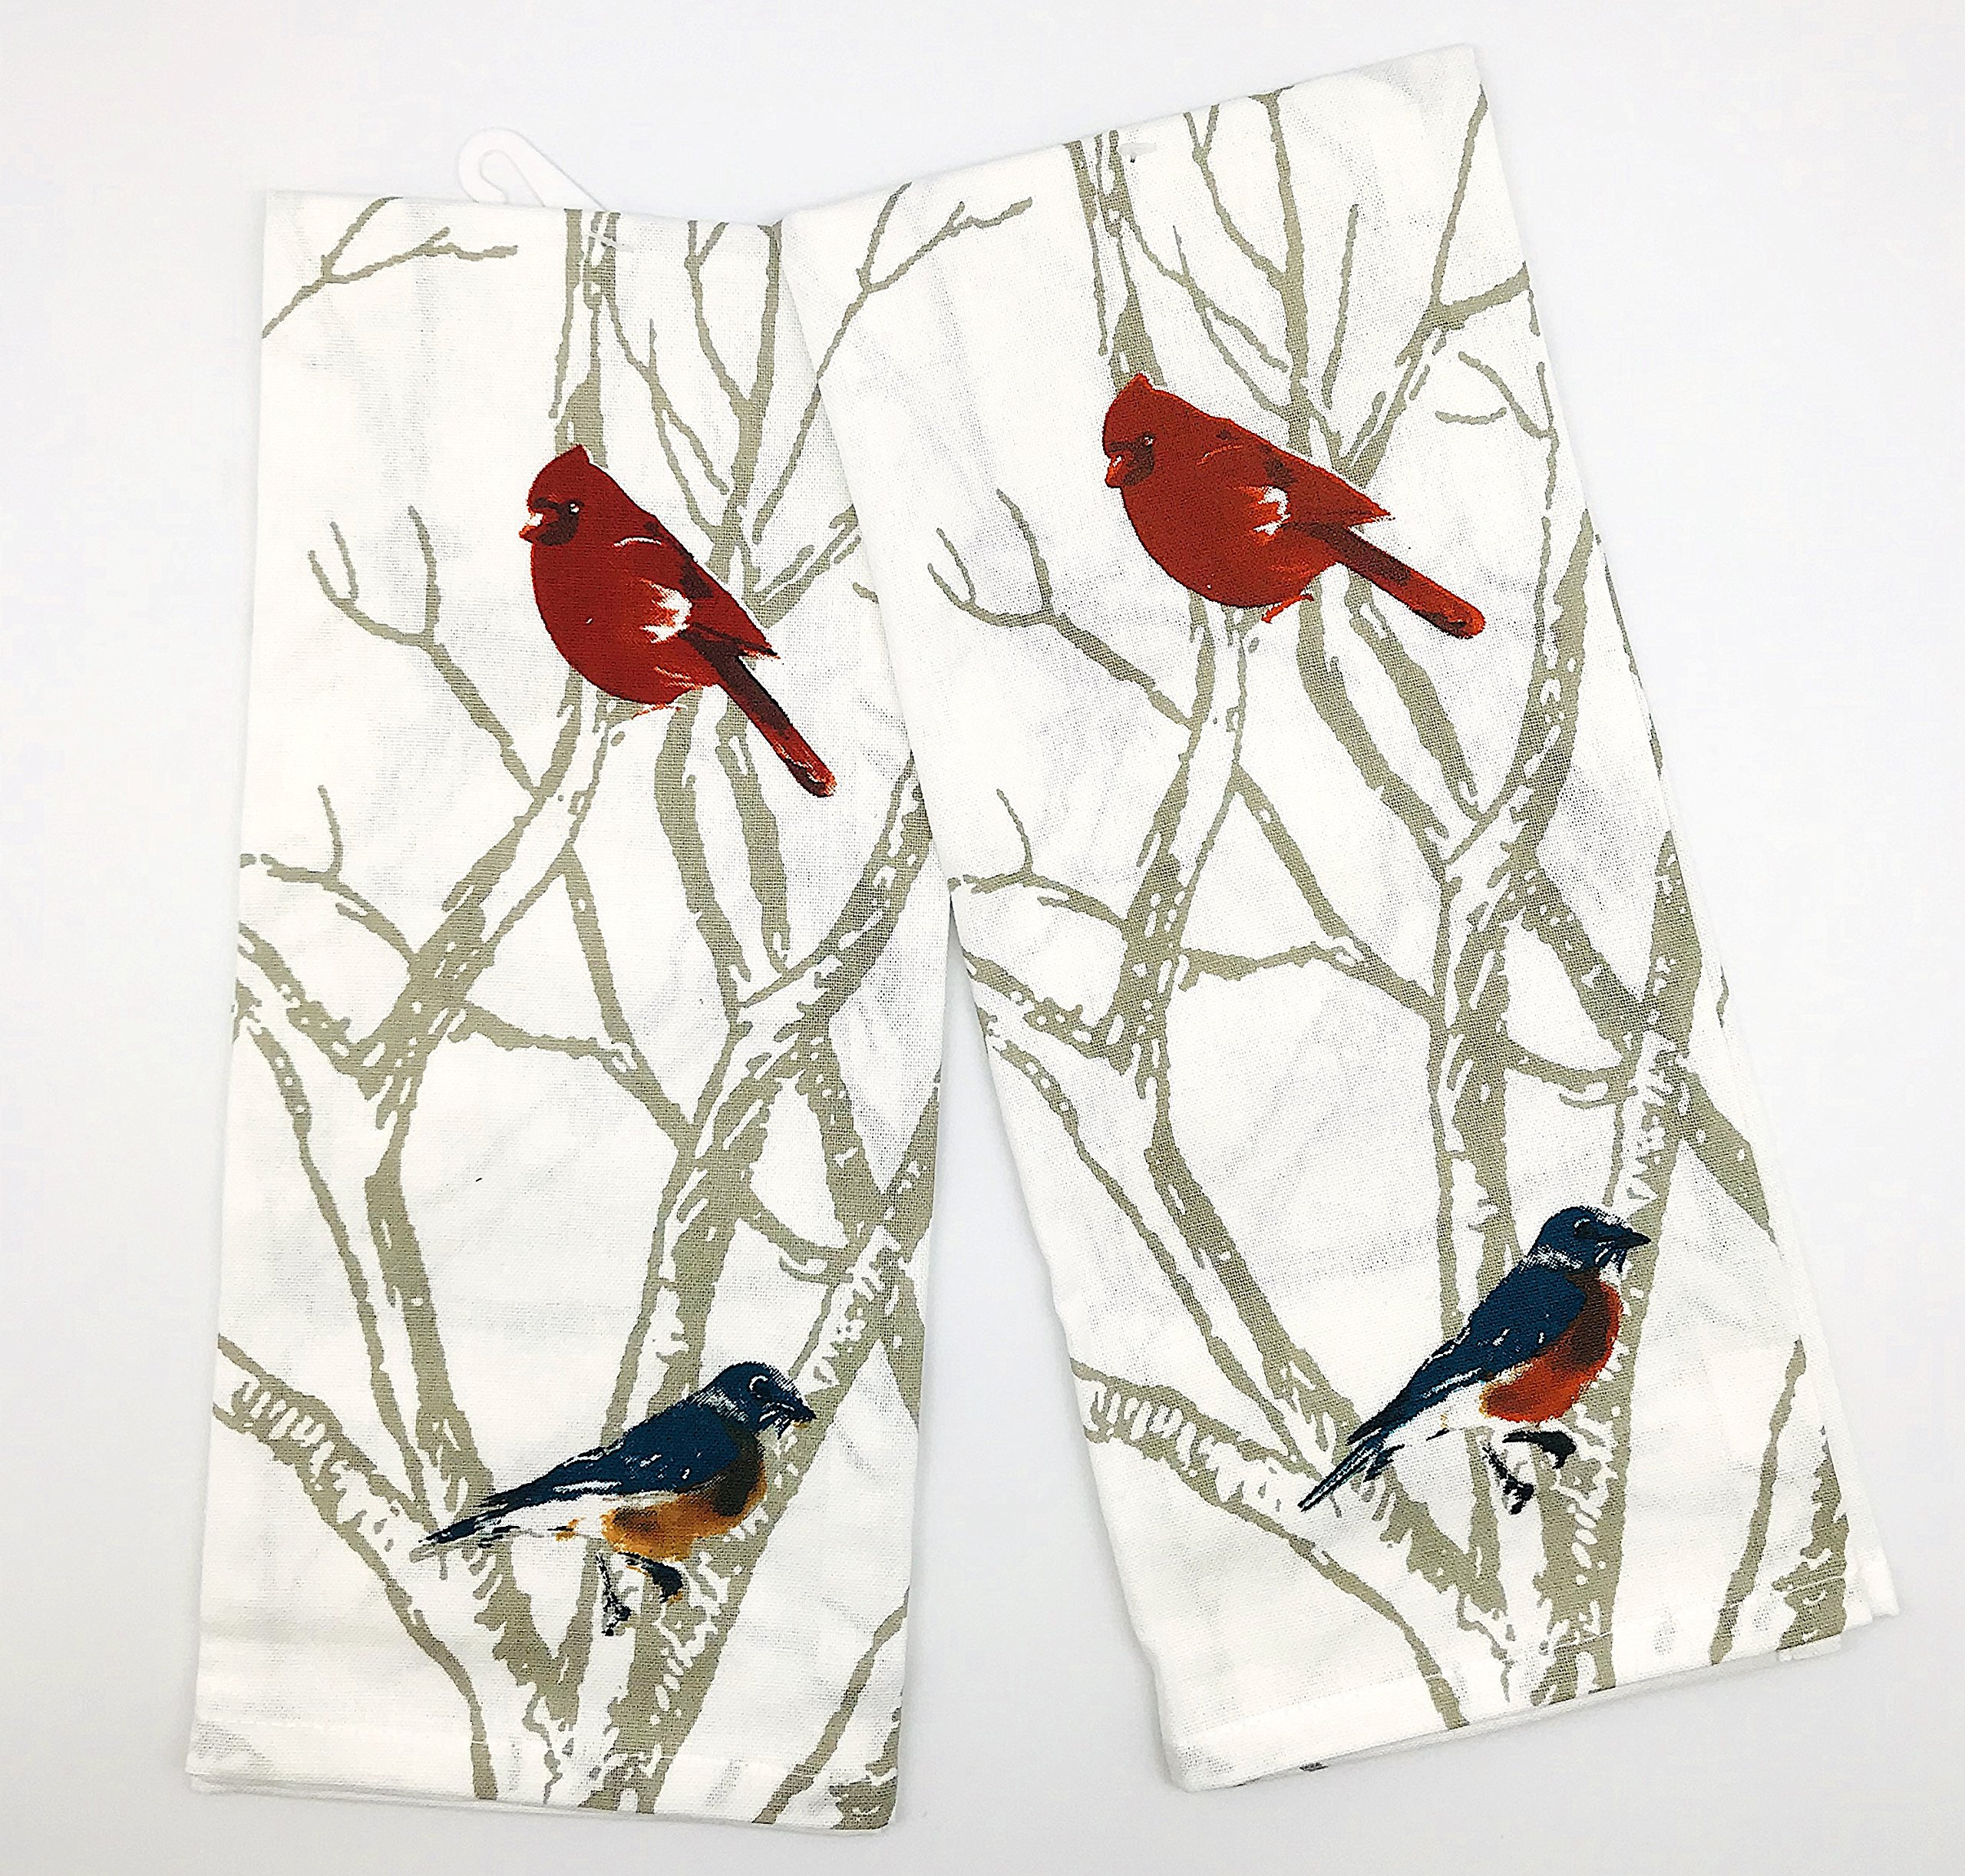 INDIA OVERSEAS Bird Watching Hand Towels: Colorful Artistic Wildlife Design, Set of 2